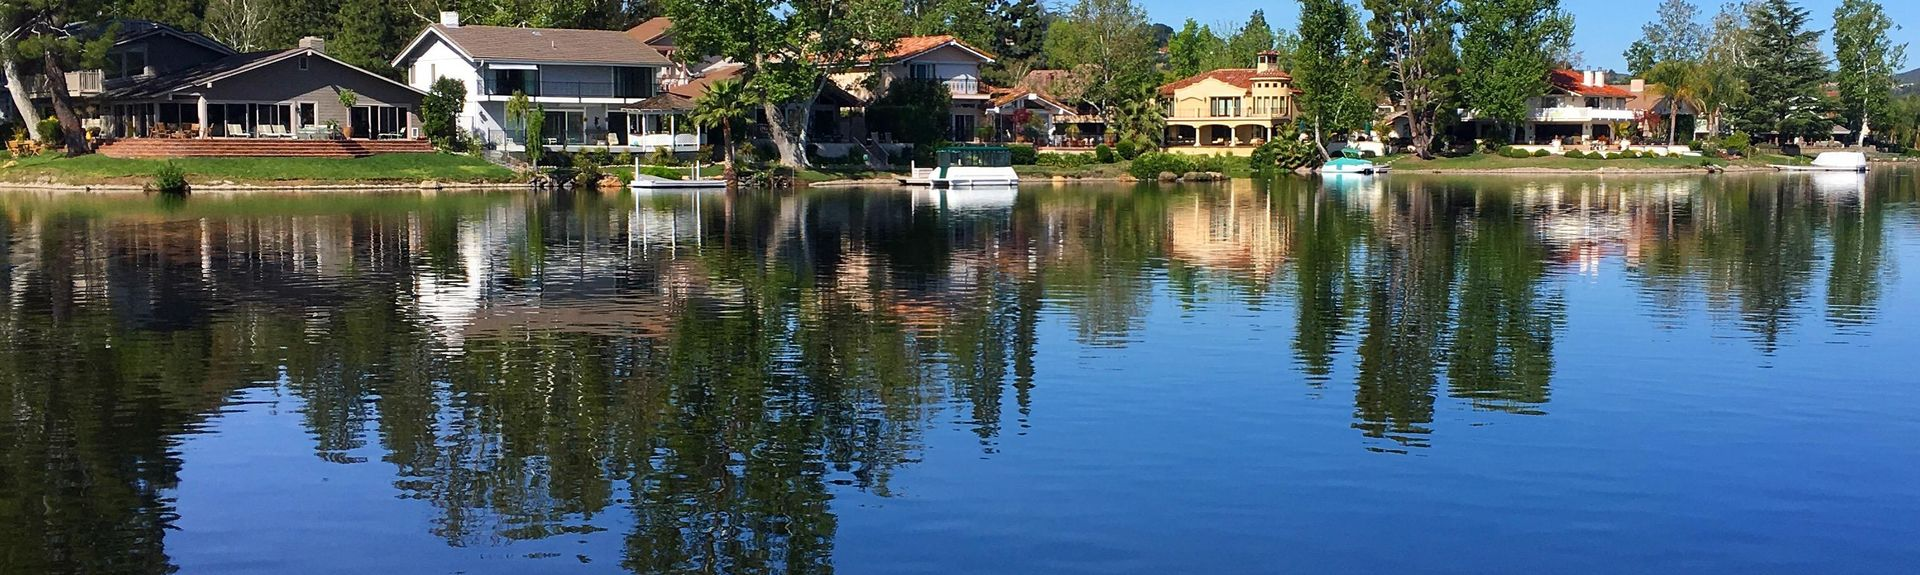 Westlake Village, CA, USA